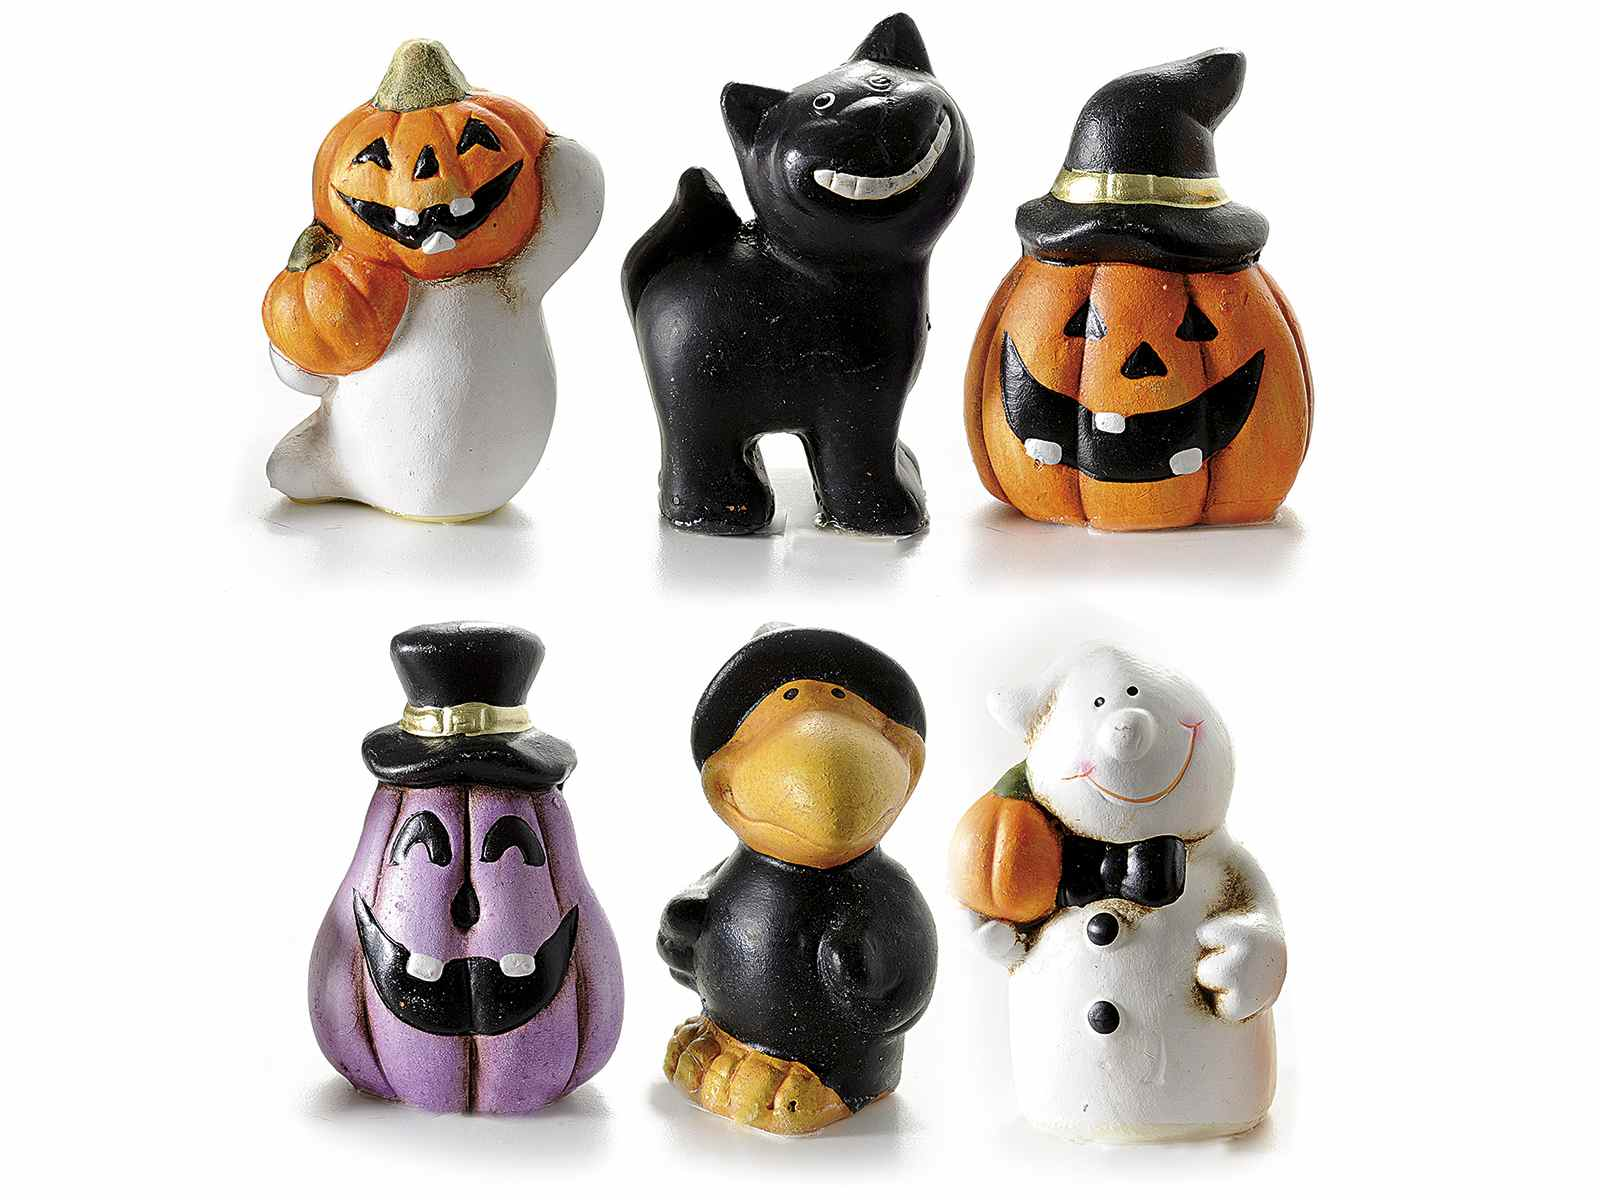 Espo con decoraciones de halloween en ceramica for Articulos decoracion halloween